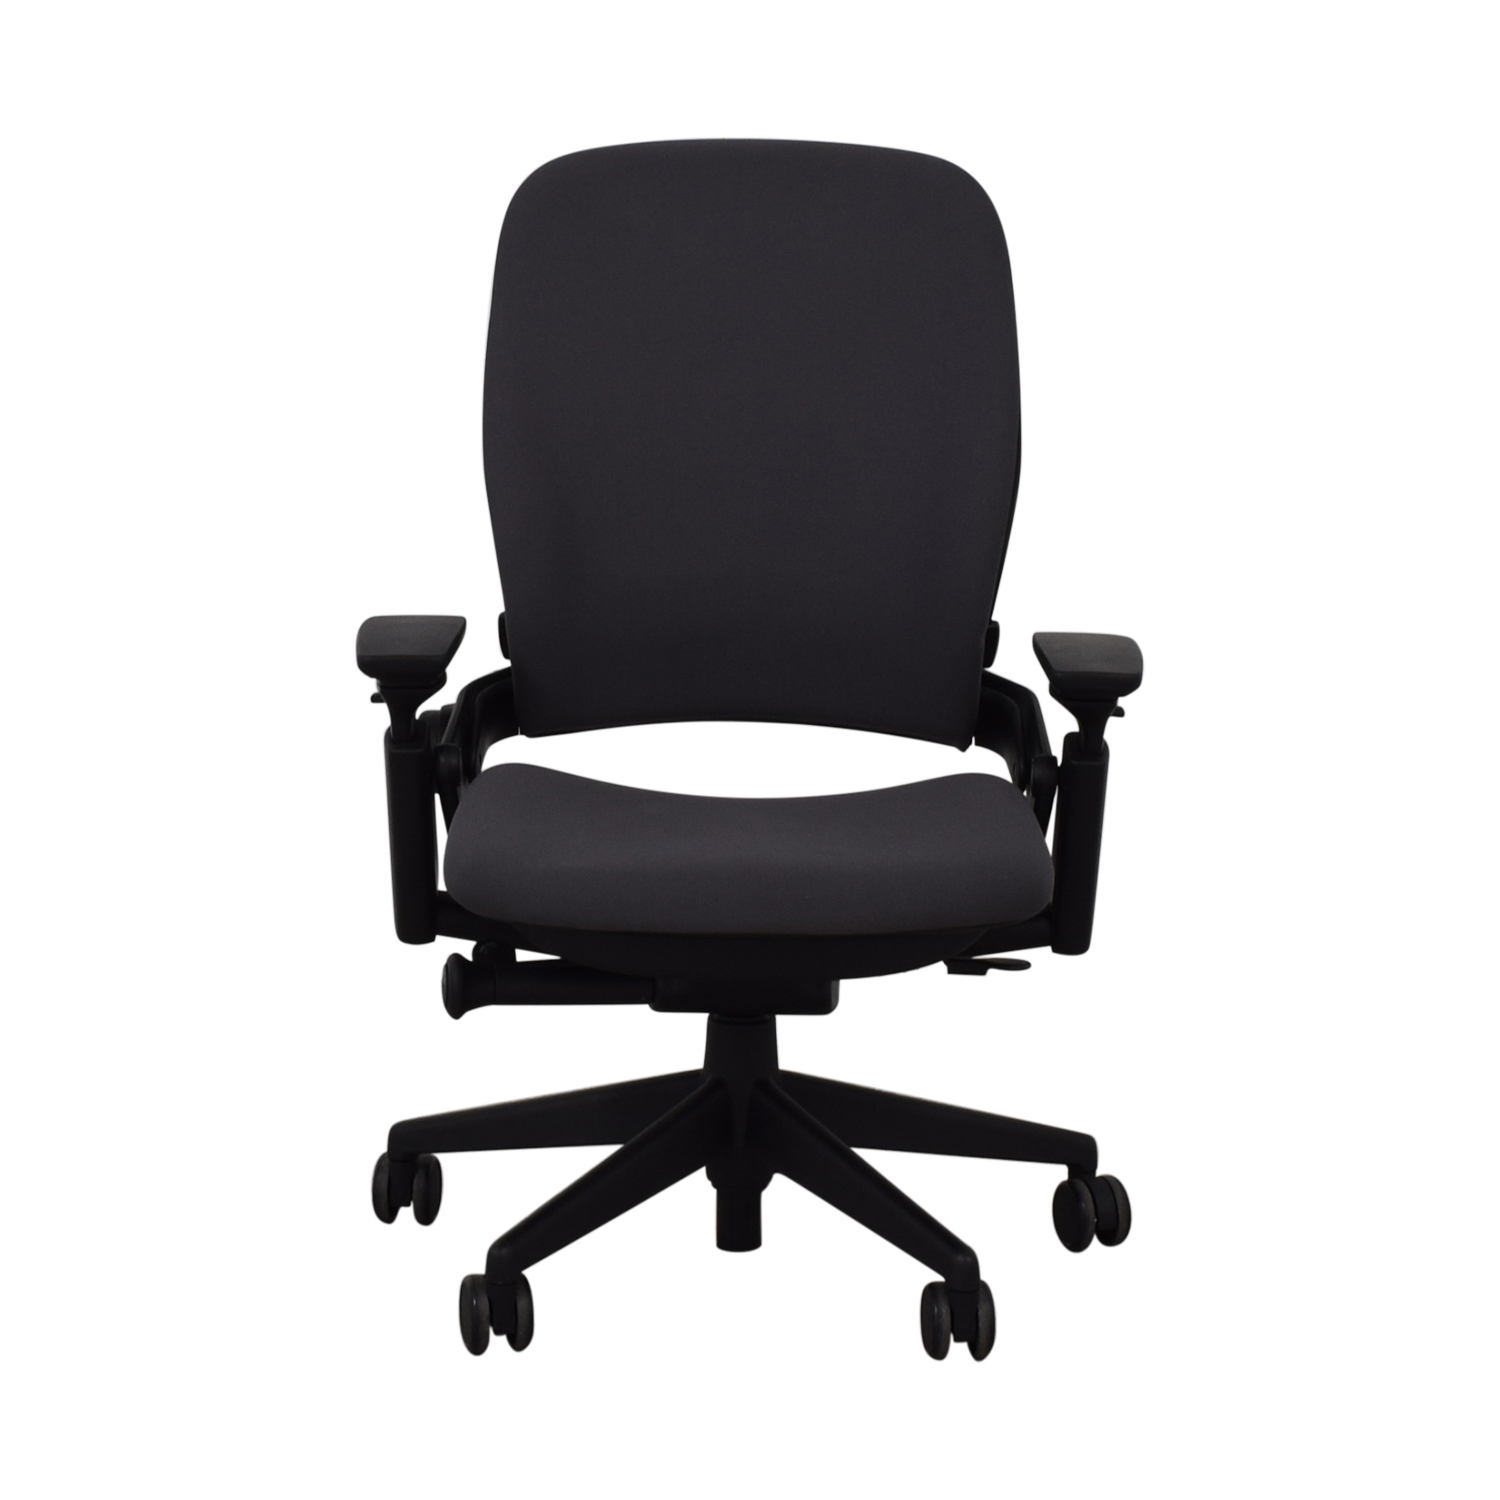 Steelcase Steelcase Leap V2 Office Chair coupon